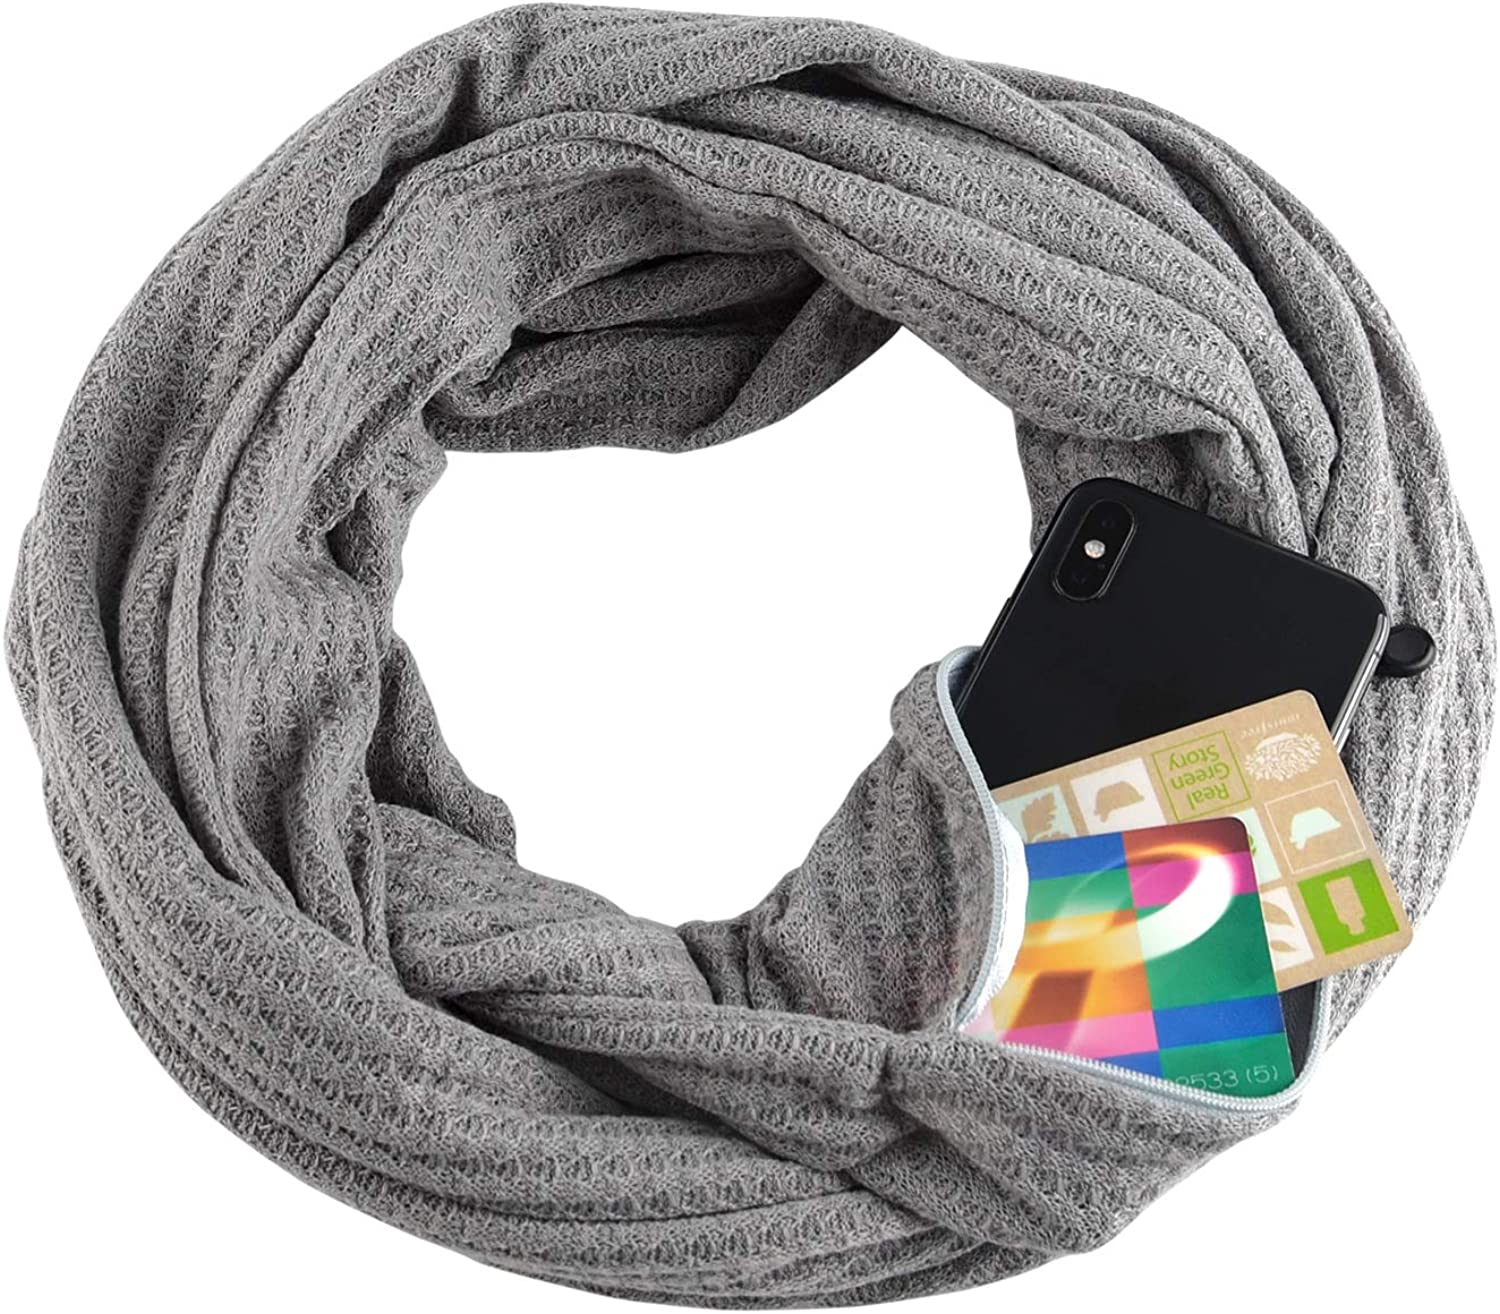 TUPARKA Infinity Scarf with Hidden Zipper Pocket Travel Essentials Lightweight Solid color Scarf for Unisex